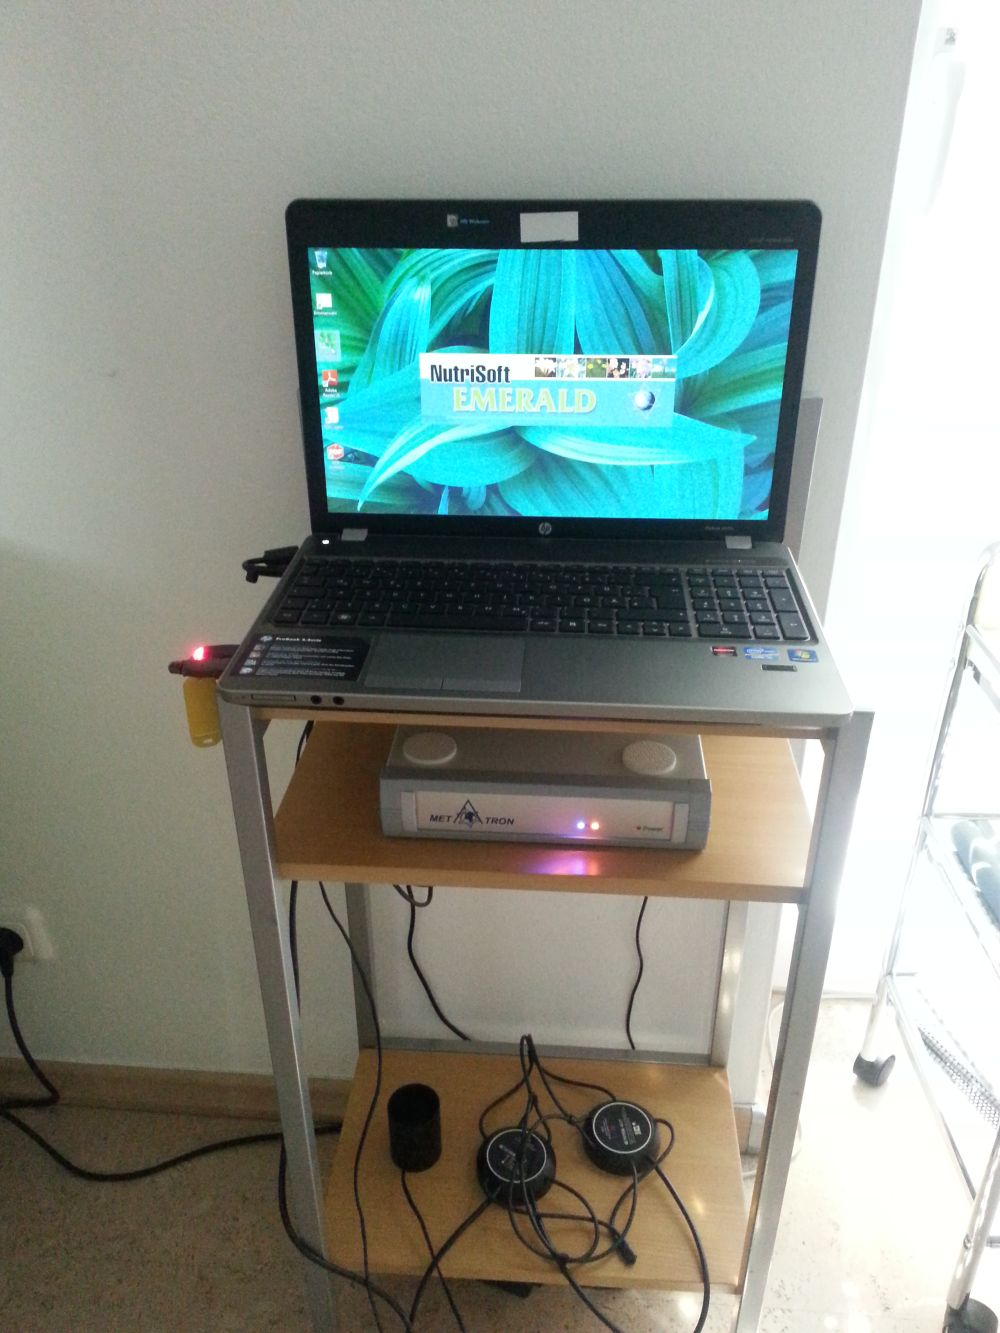 Metatron Nutrisoft Emerald 4017 mit HP Laptop, Bj. 2012